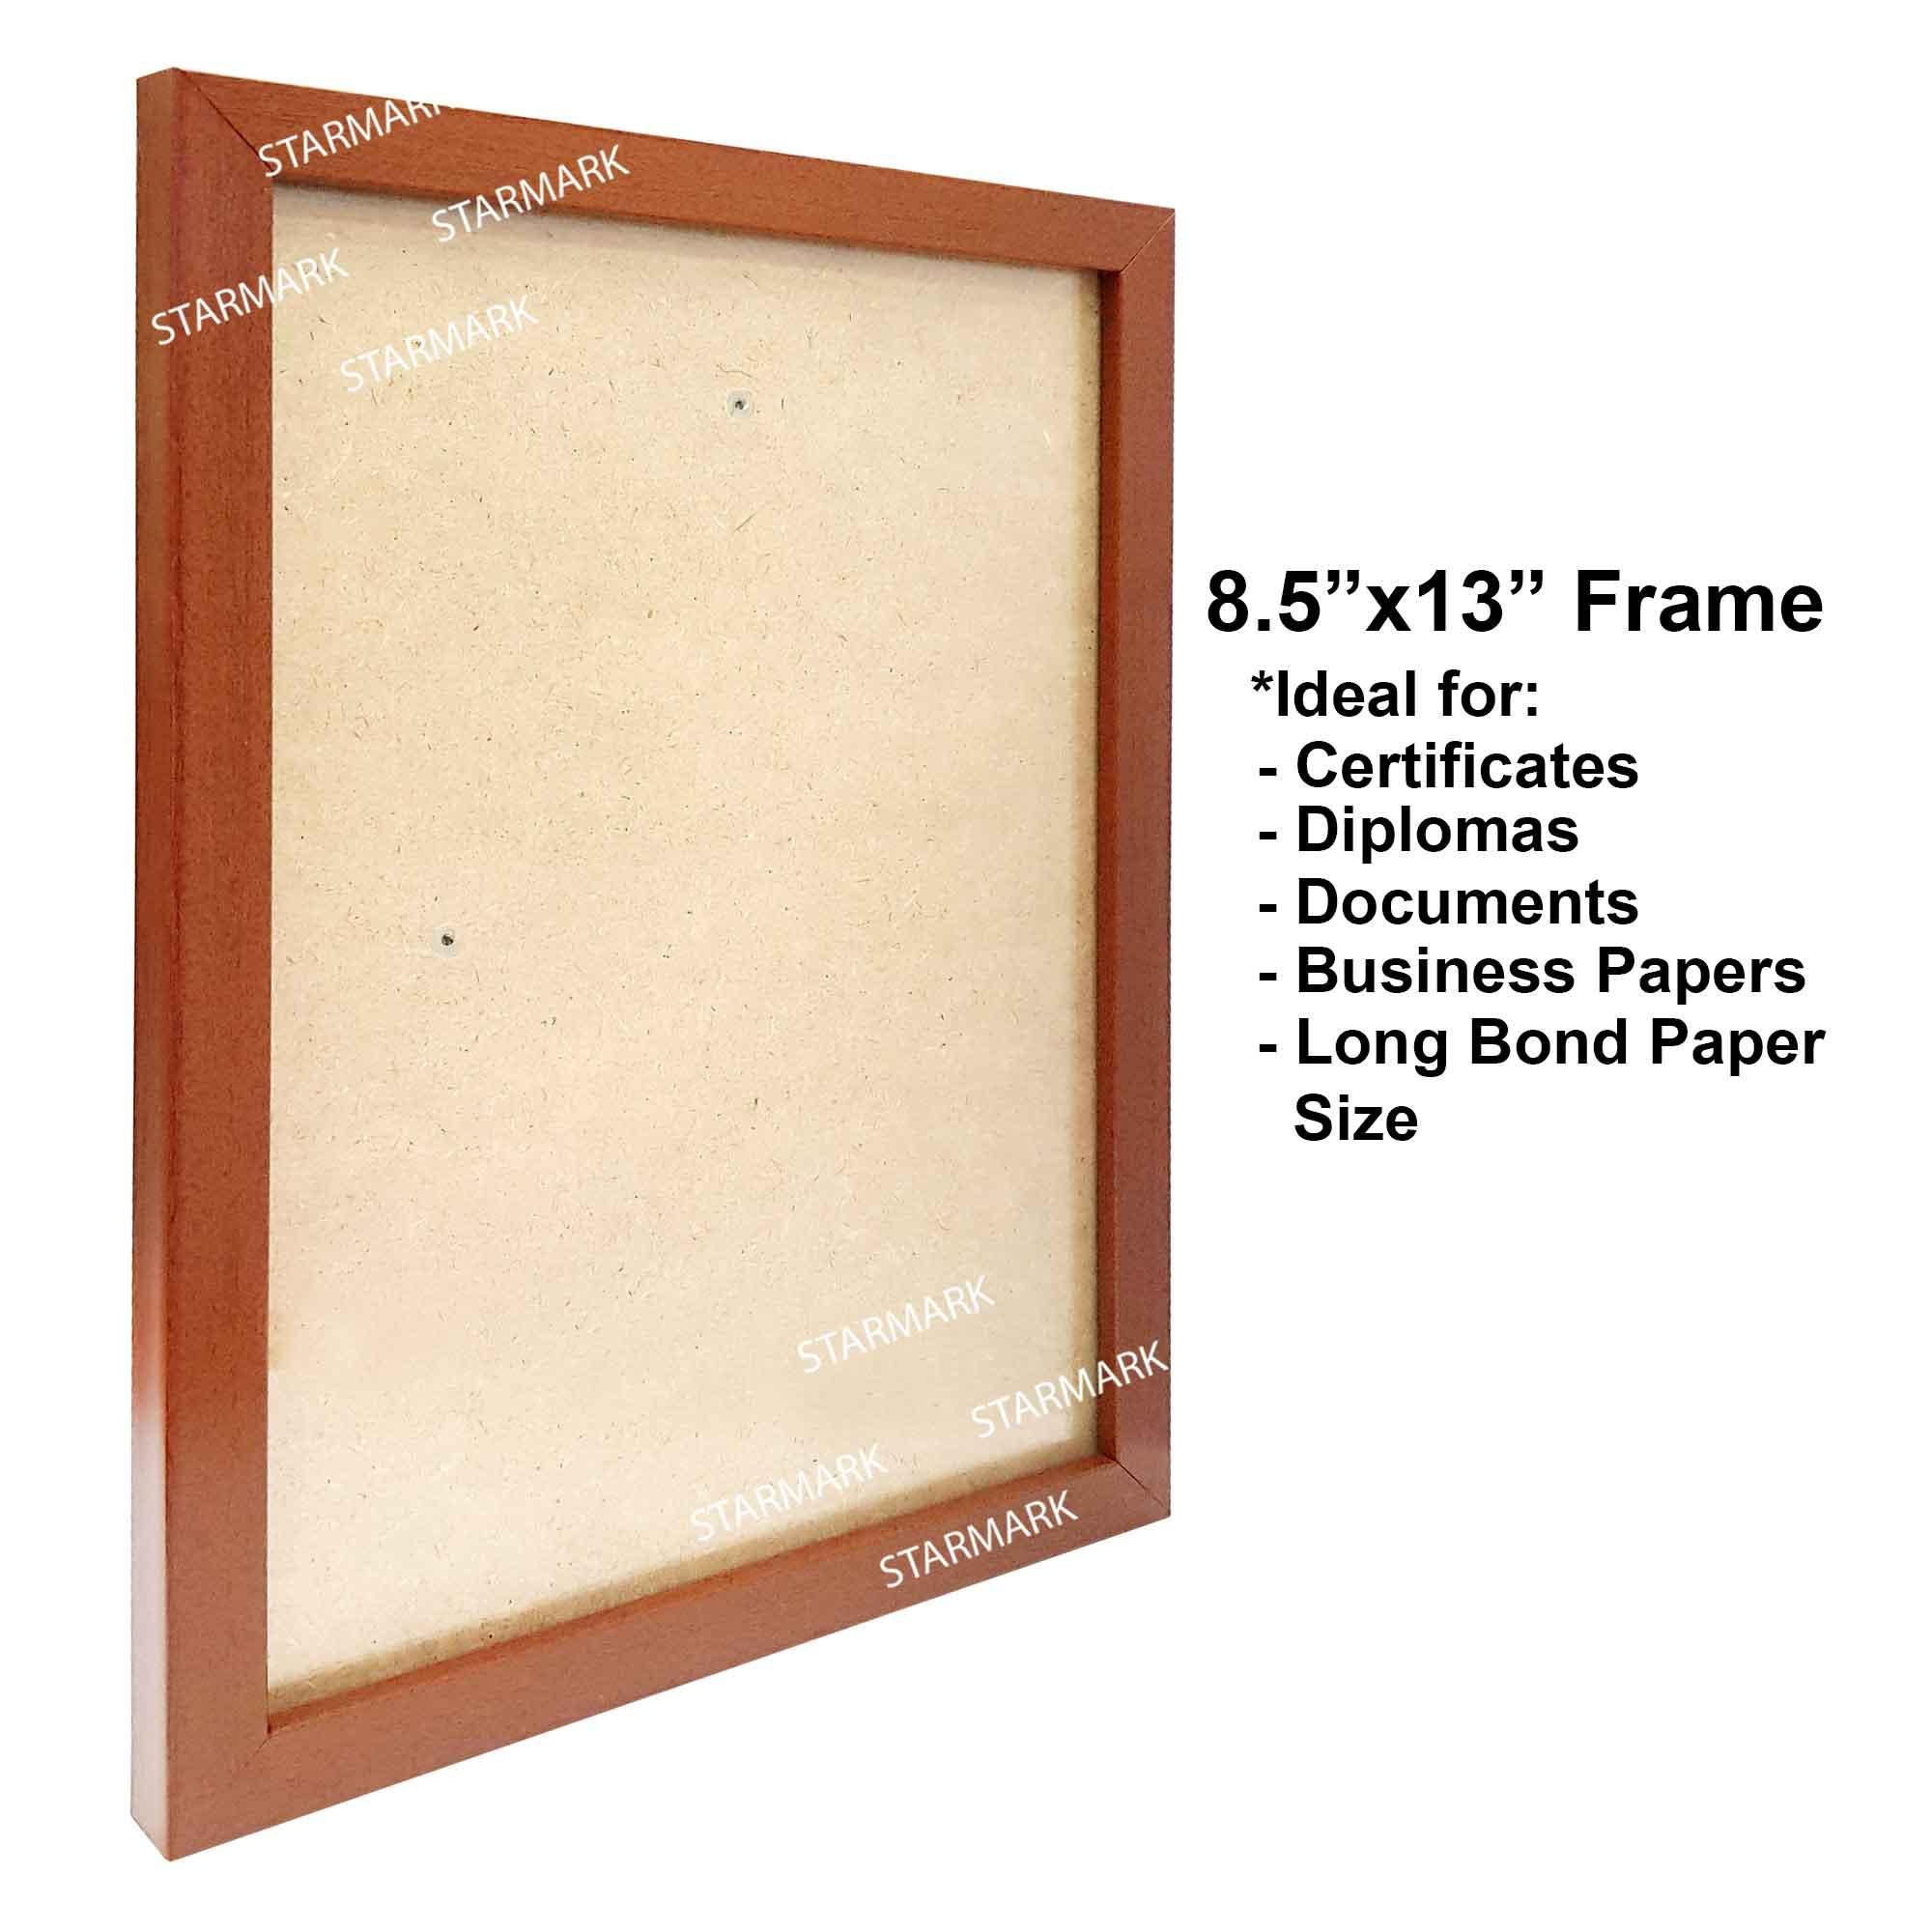 1f7e924ac70 Starmark Certificate Document Picture Frame Frames 8.5x13 inches - Long  Bond Paper Size - Mid